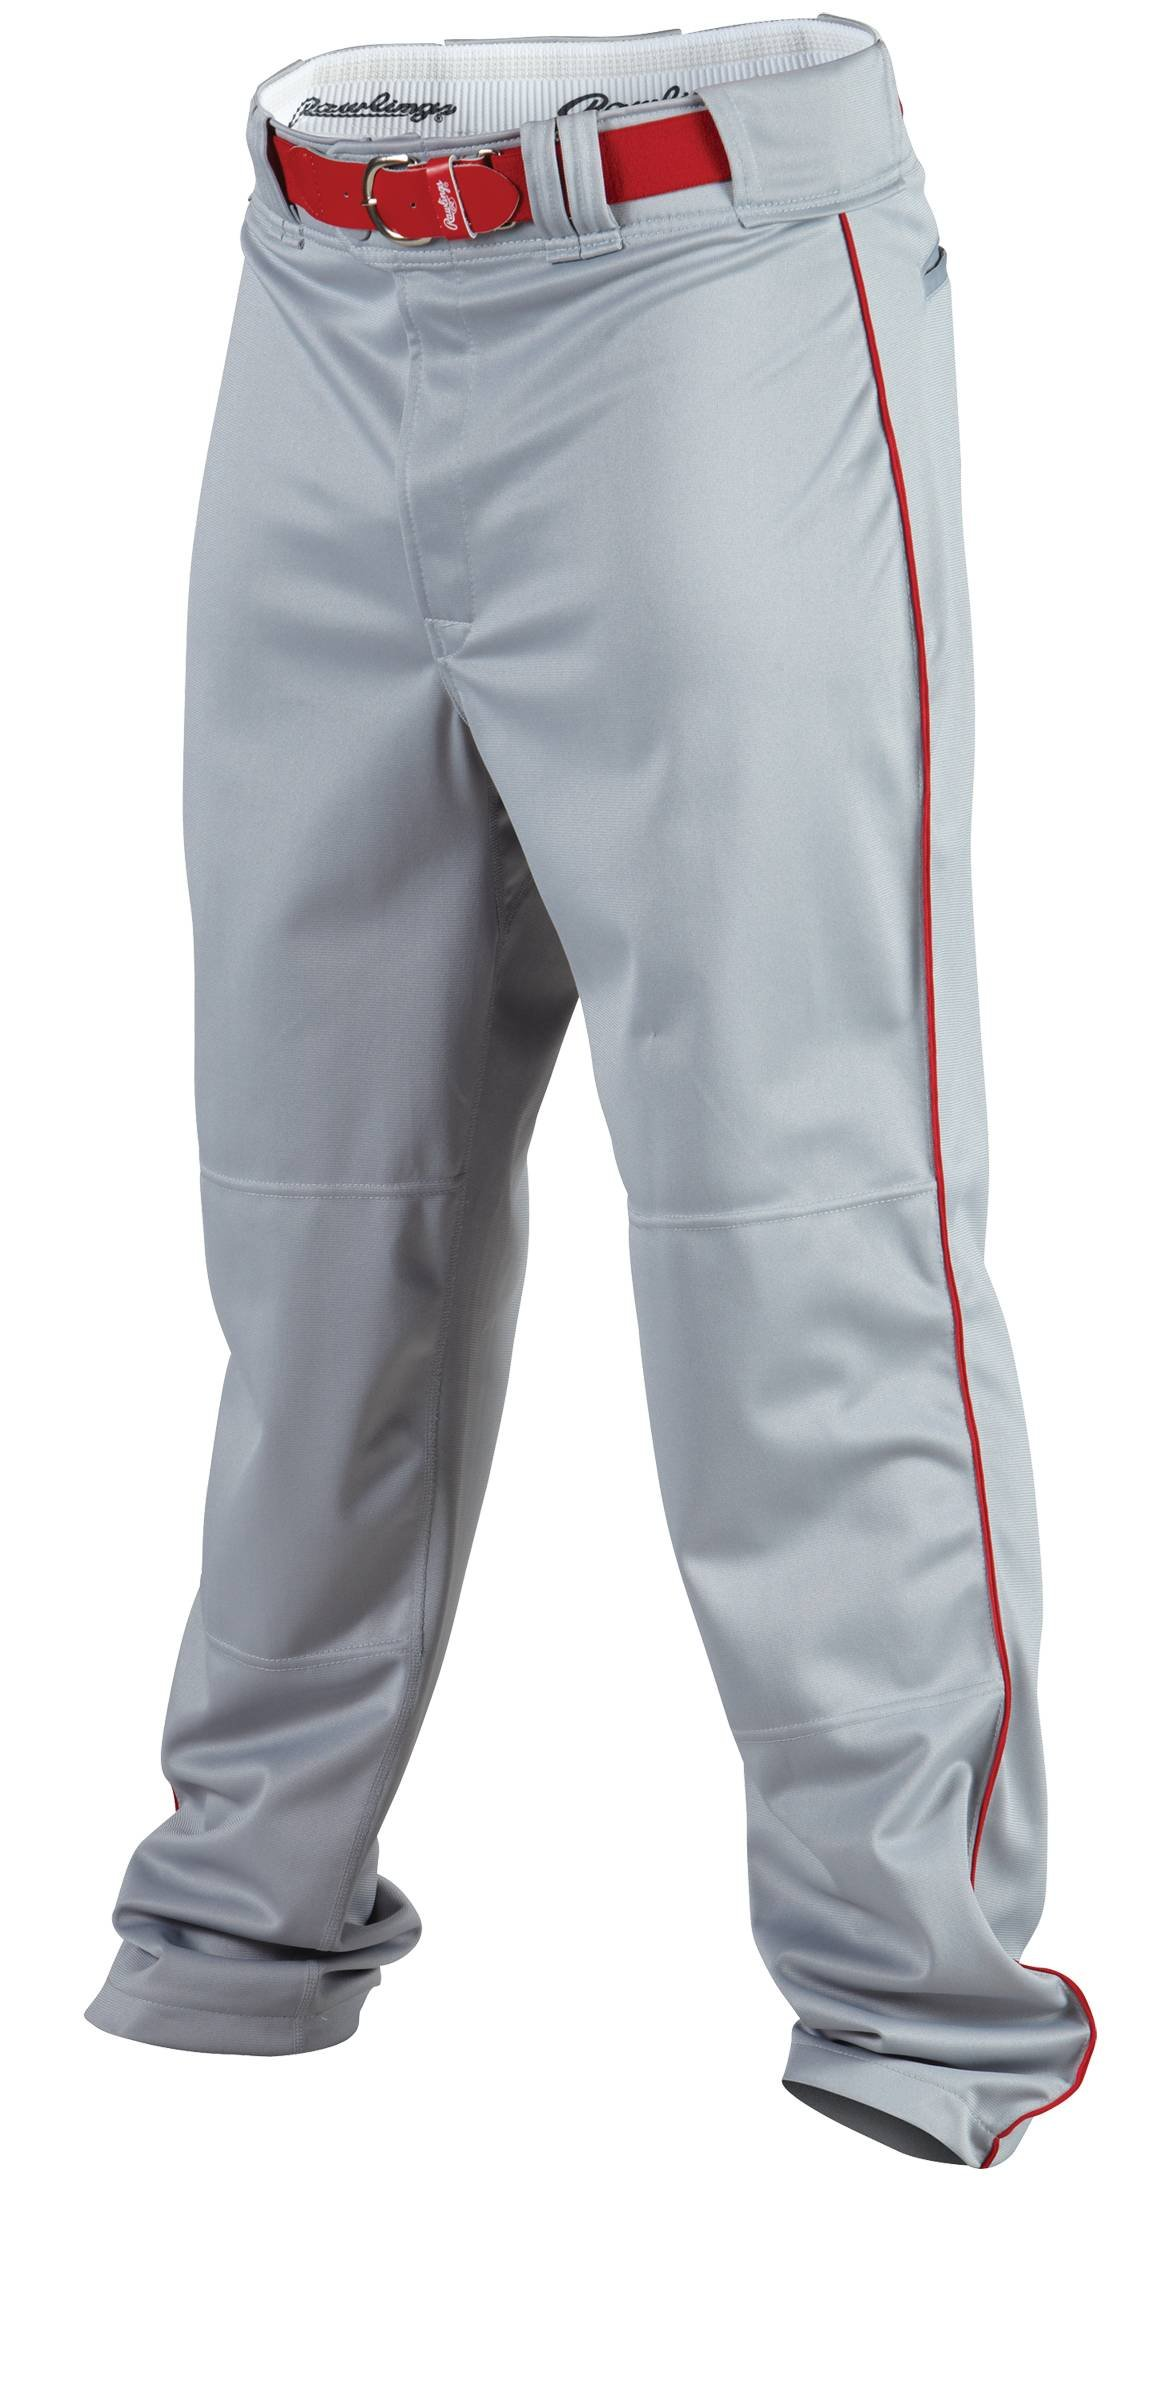 Rawlings Men's Baseball Pant (Blue Grey/Scarlet, Large) by Rawlings